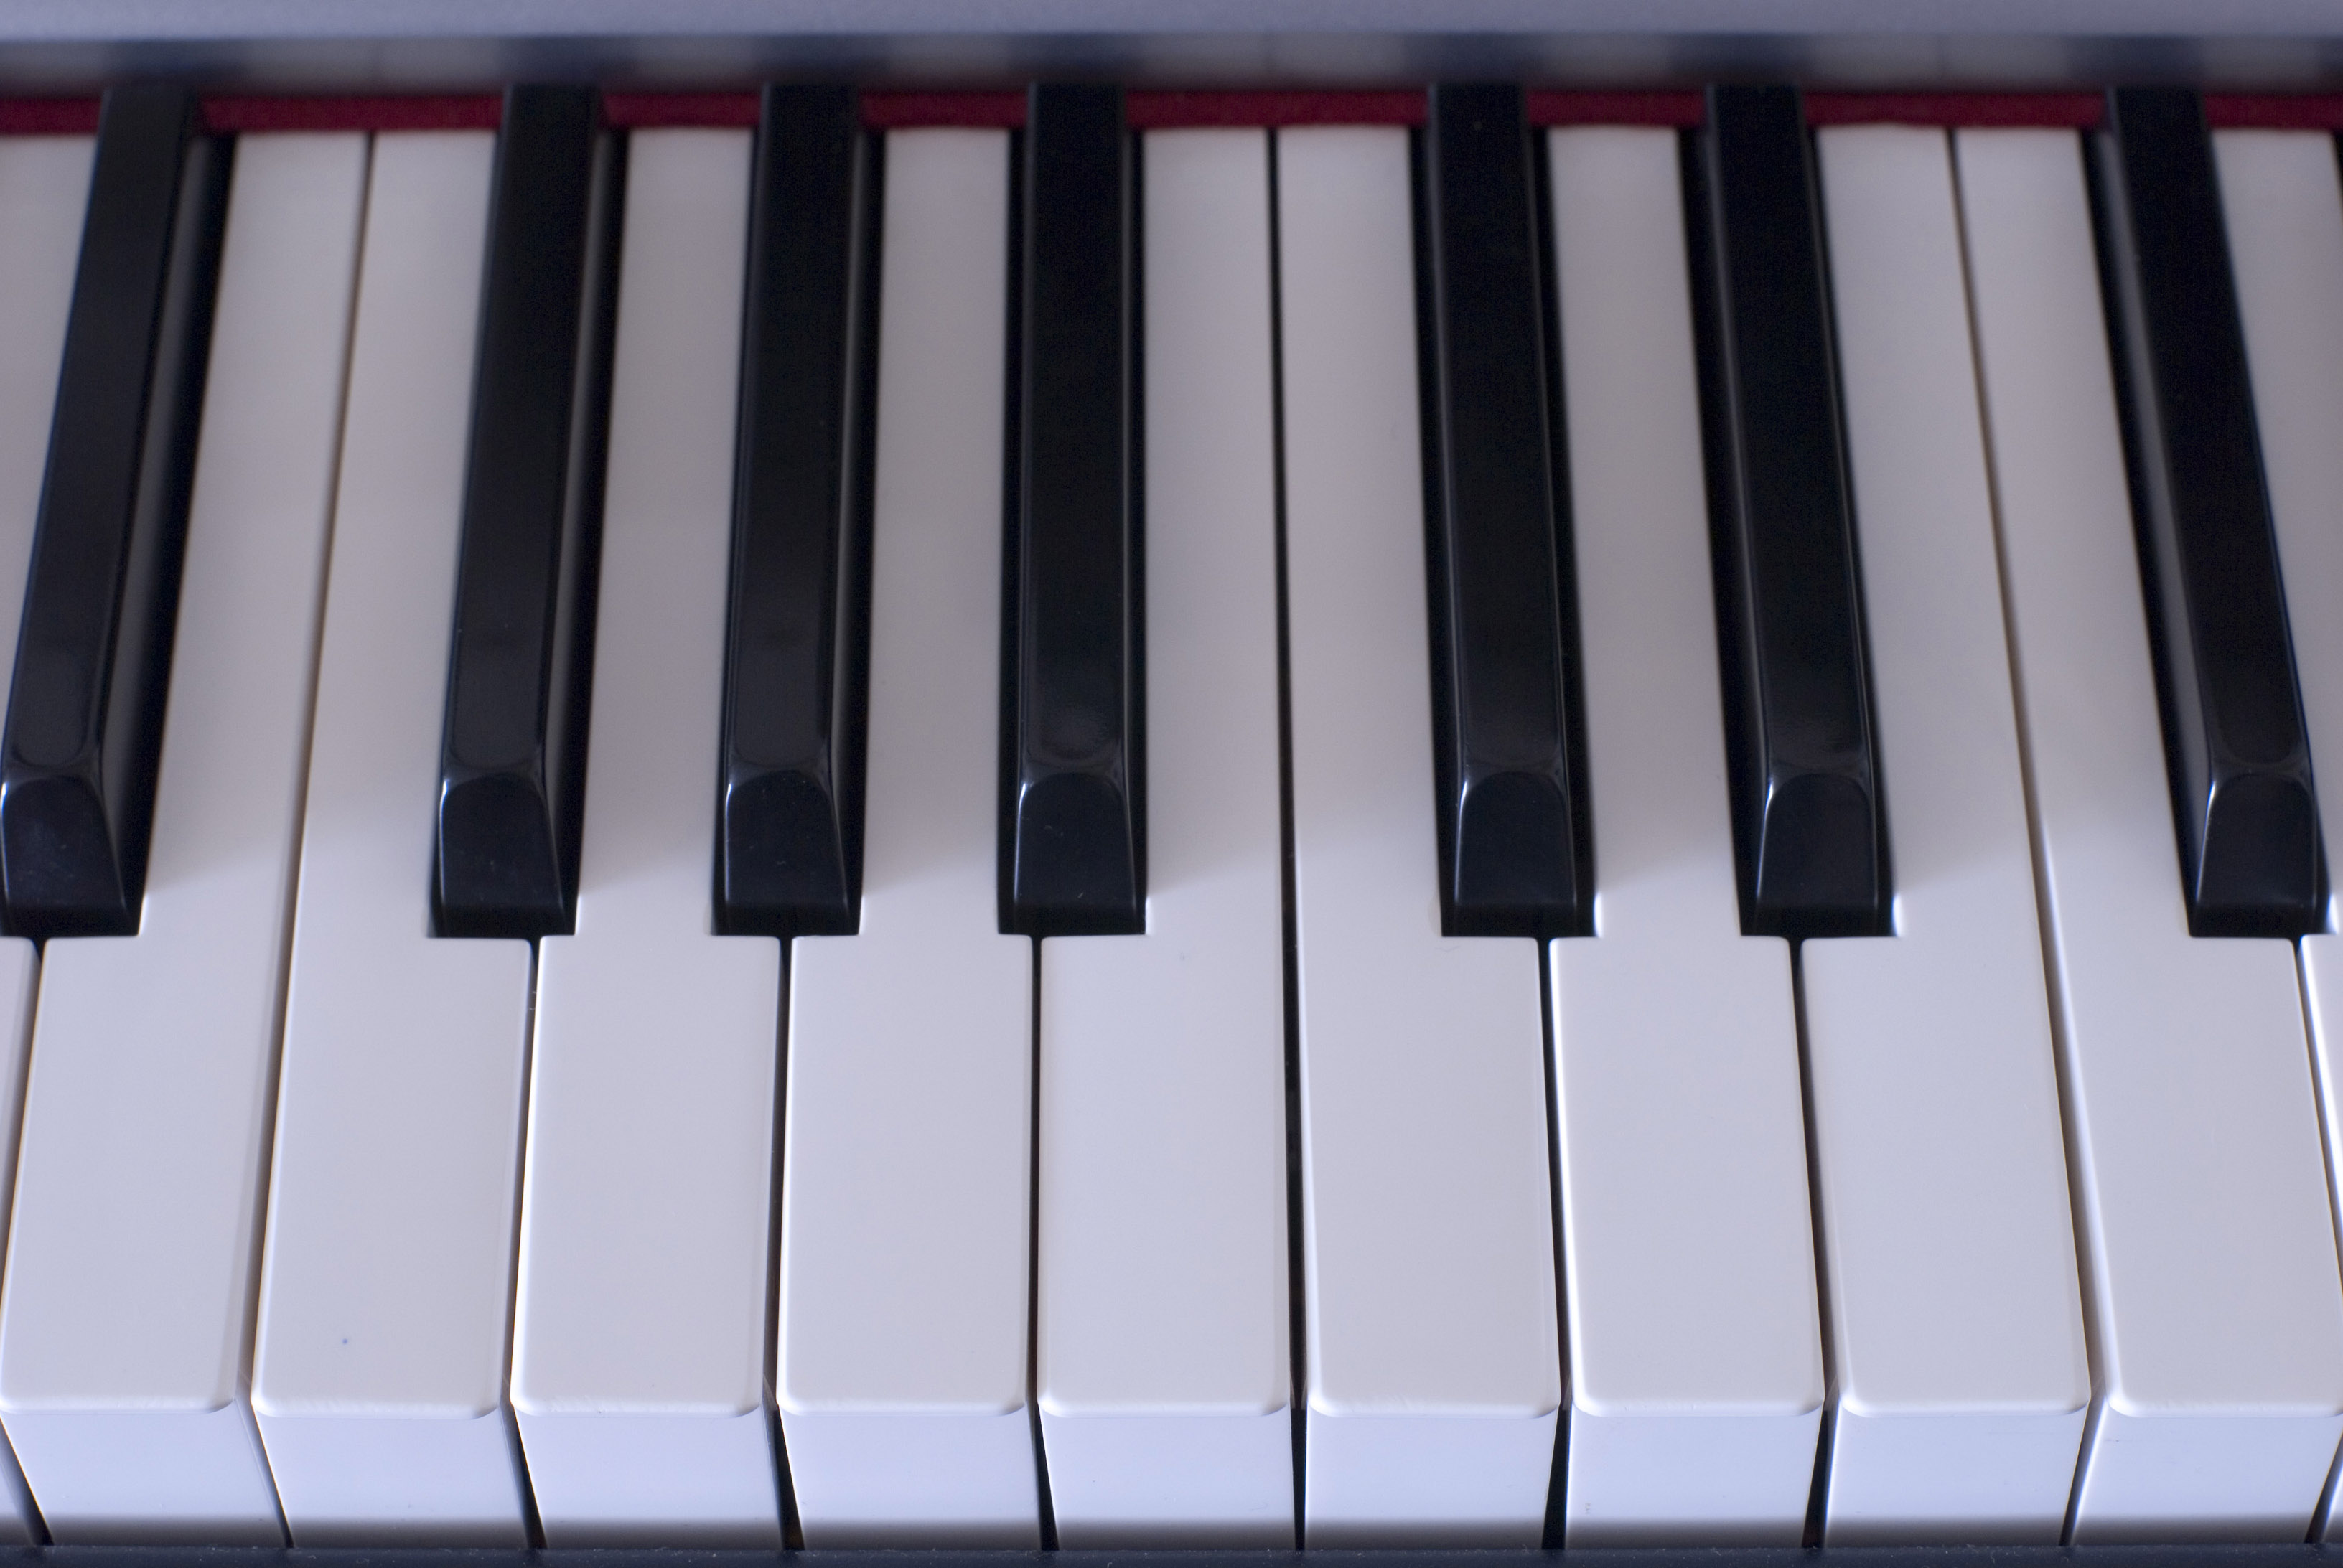 an octave of piano keys